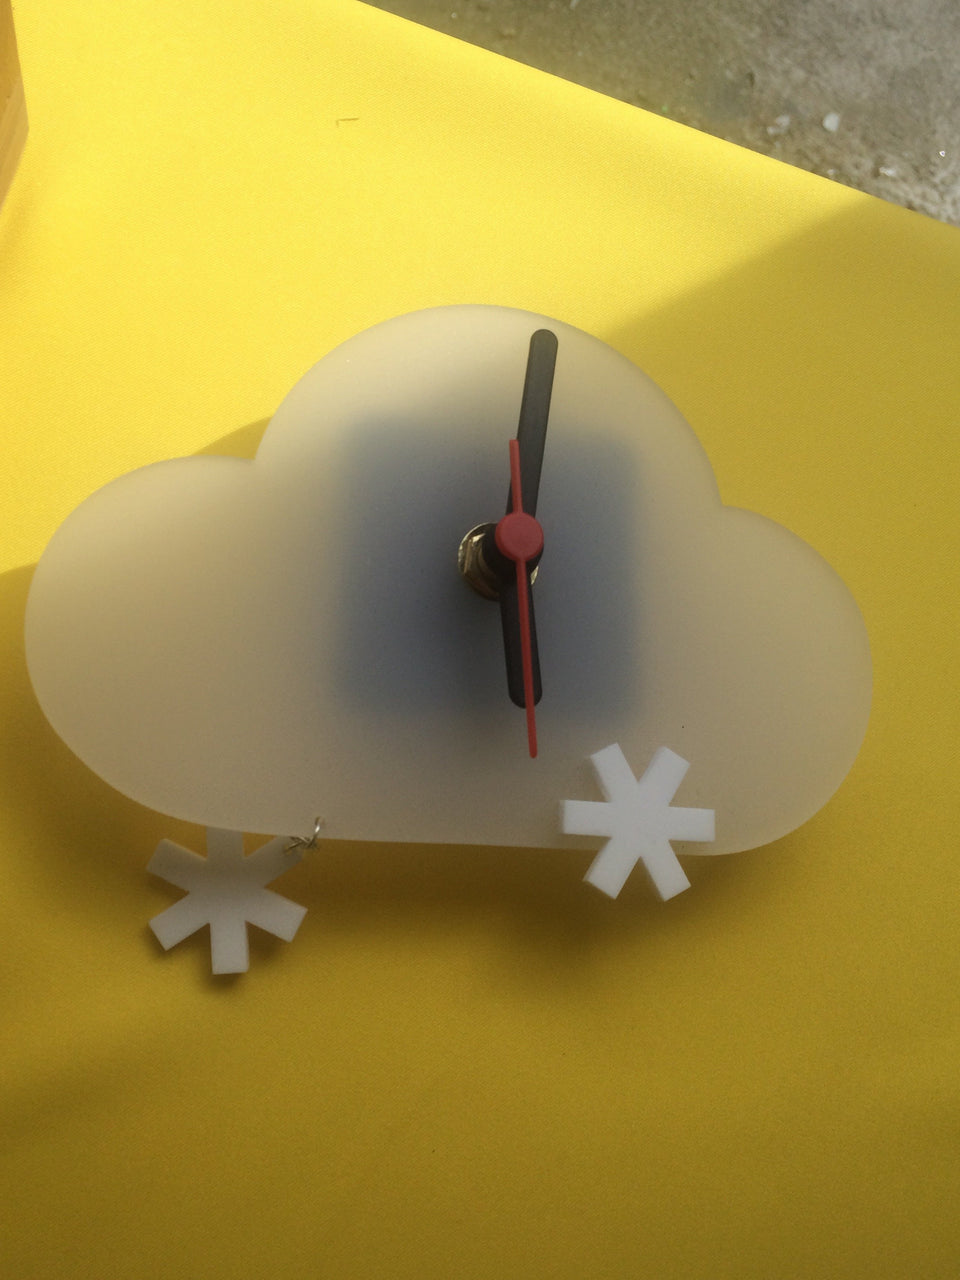 Whatever the Weather Clocks - Alice Jacobs (Flux Laser Studio) - Braw Wee Emporium